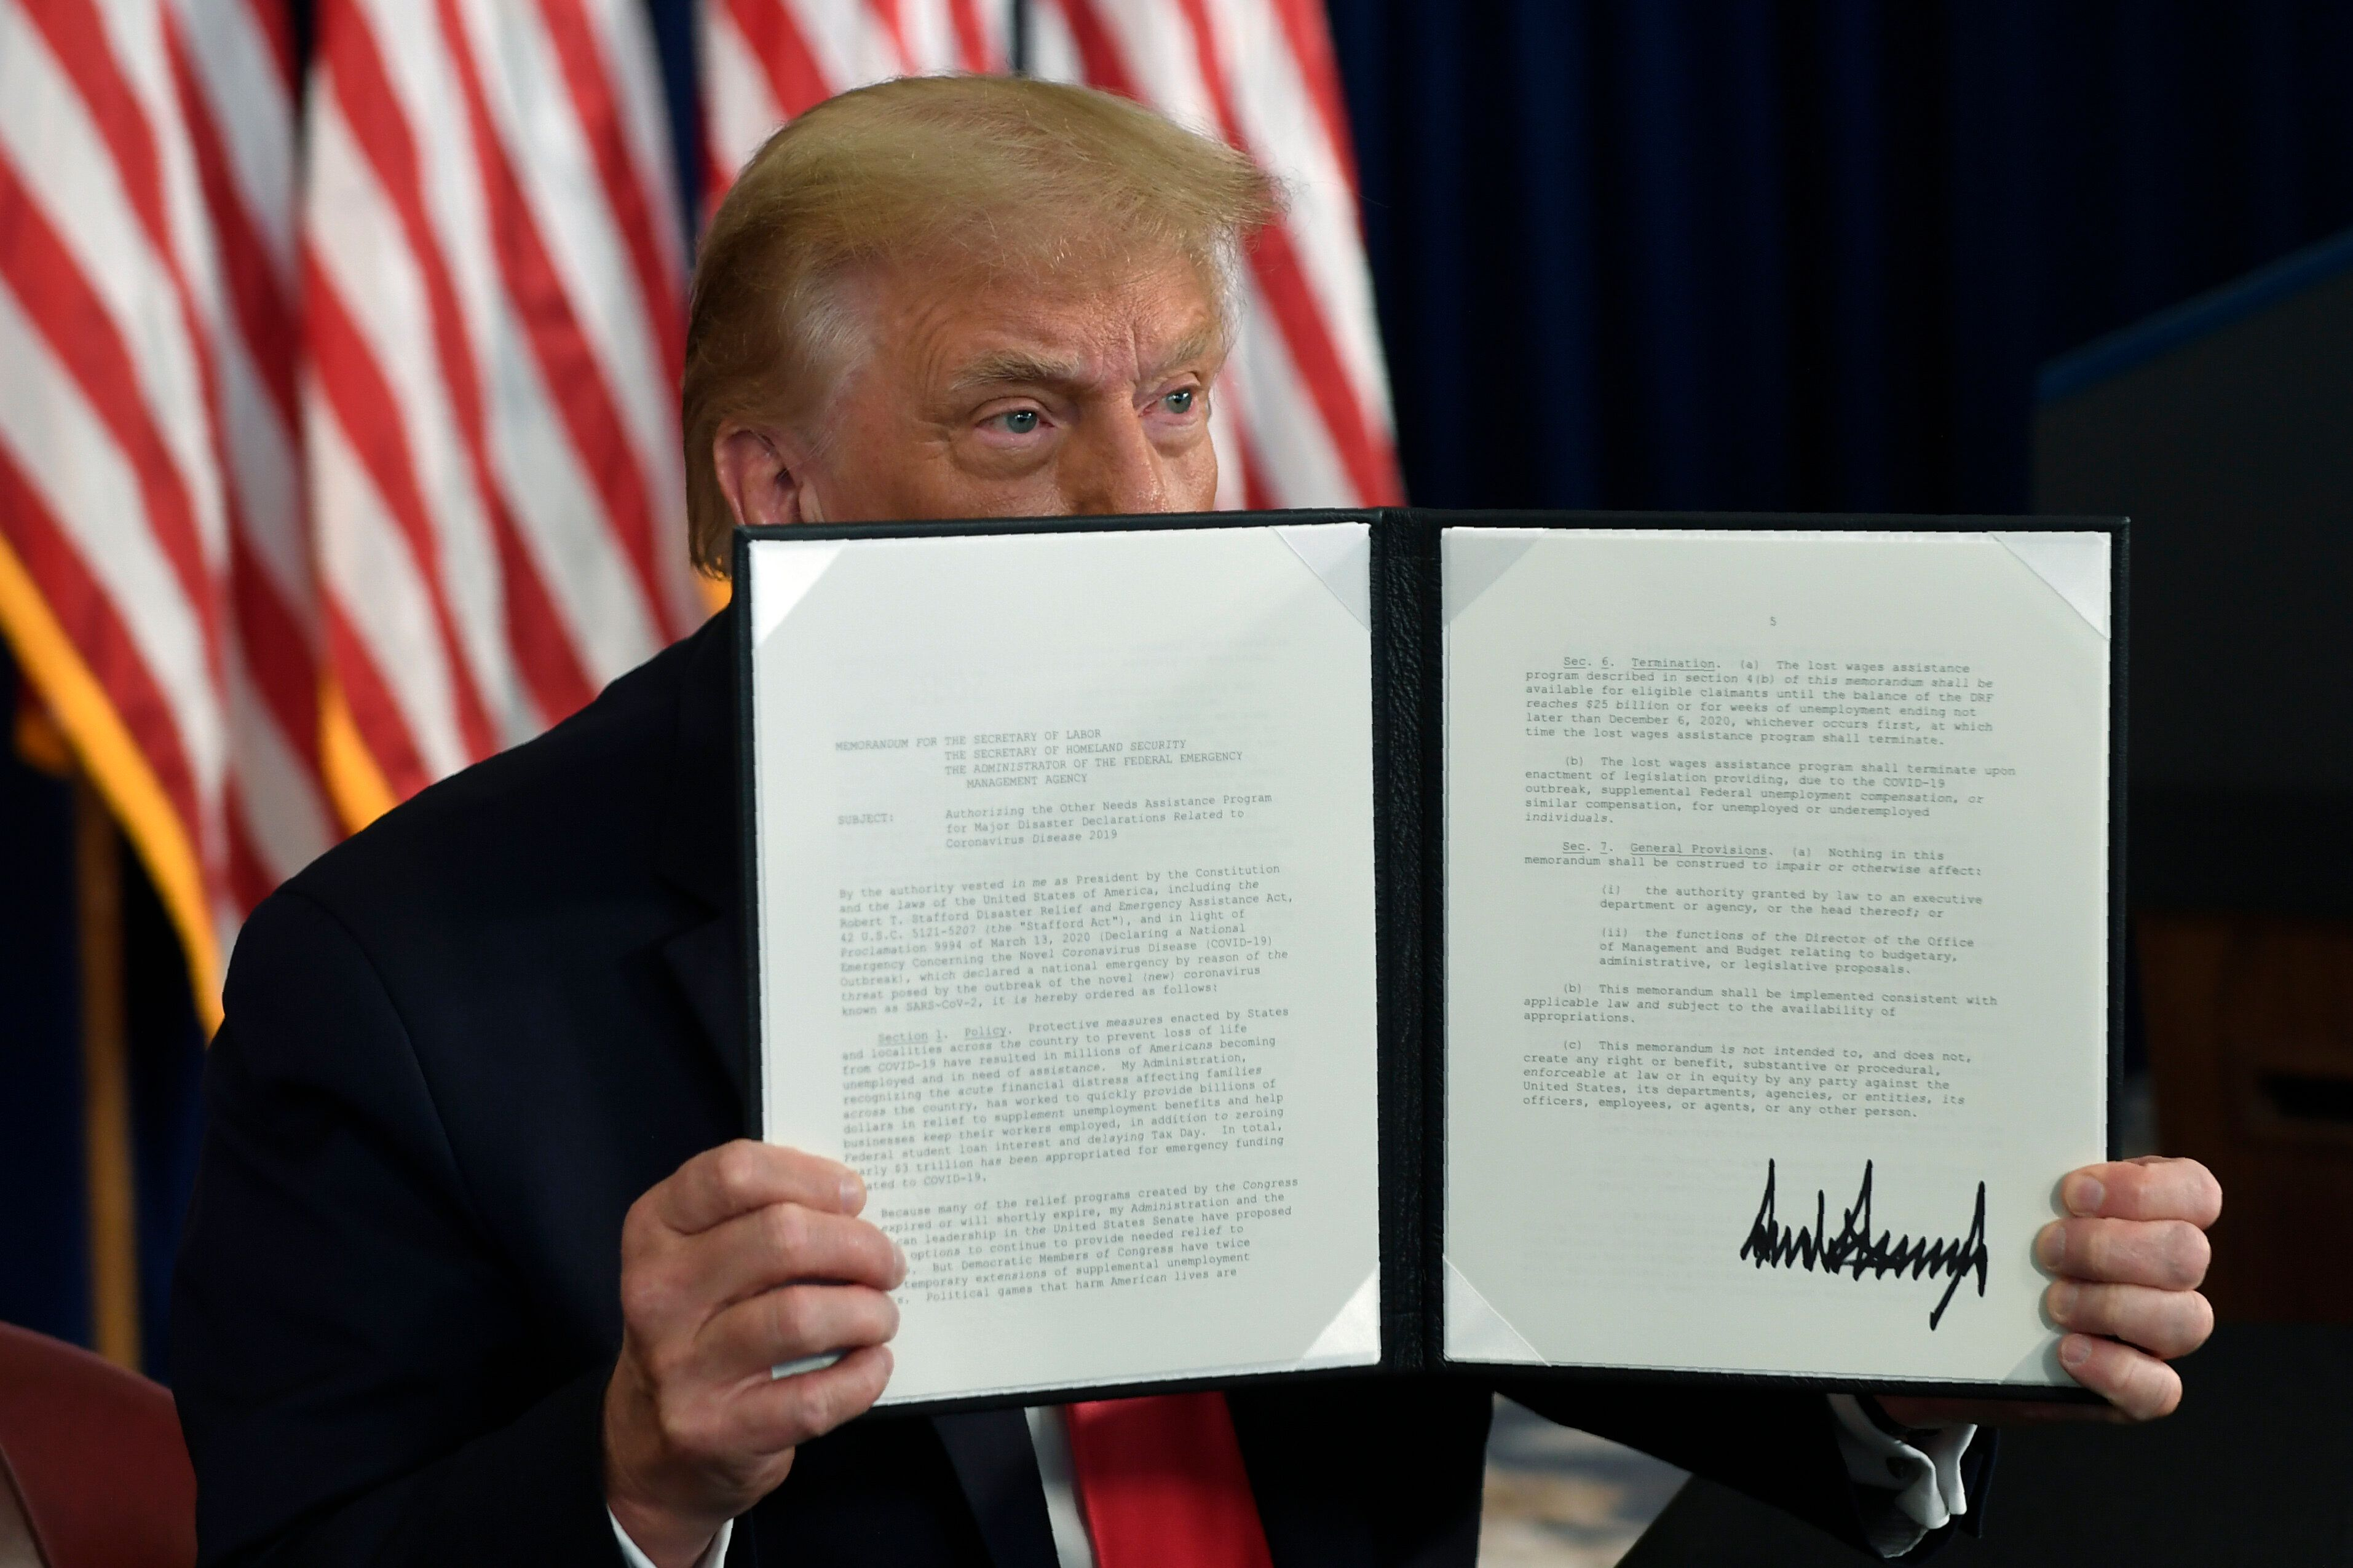 President Donald Trump signs an executive order during a news conference at the Trump National Golf Club in Bedminster, New J